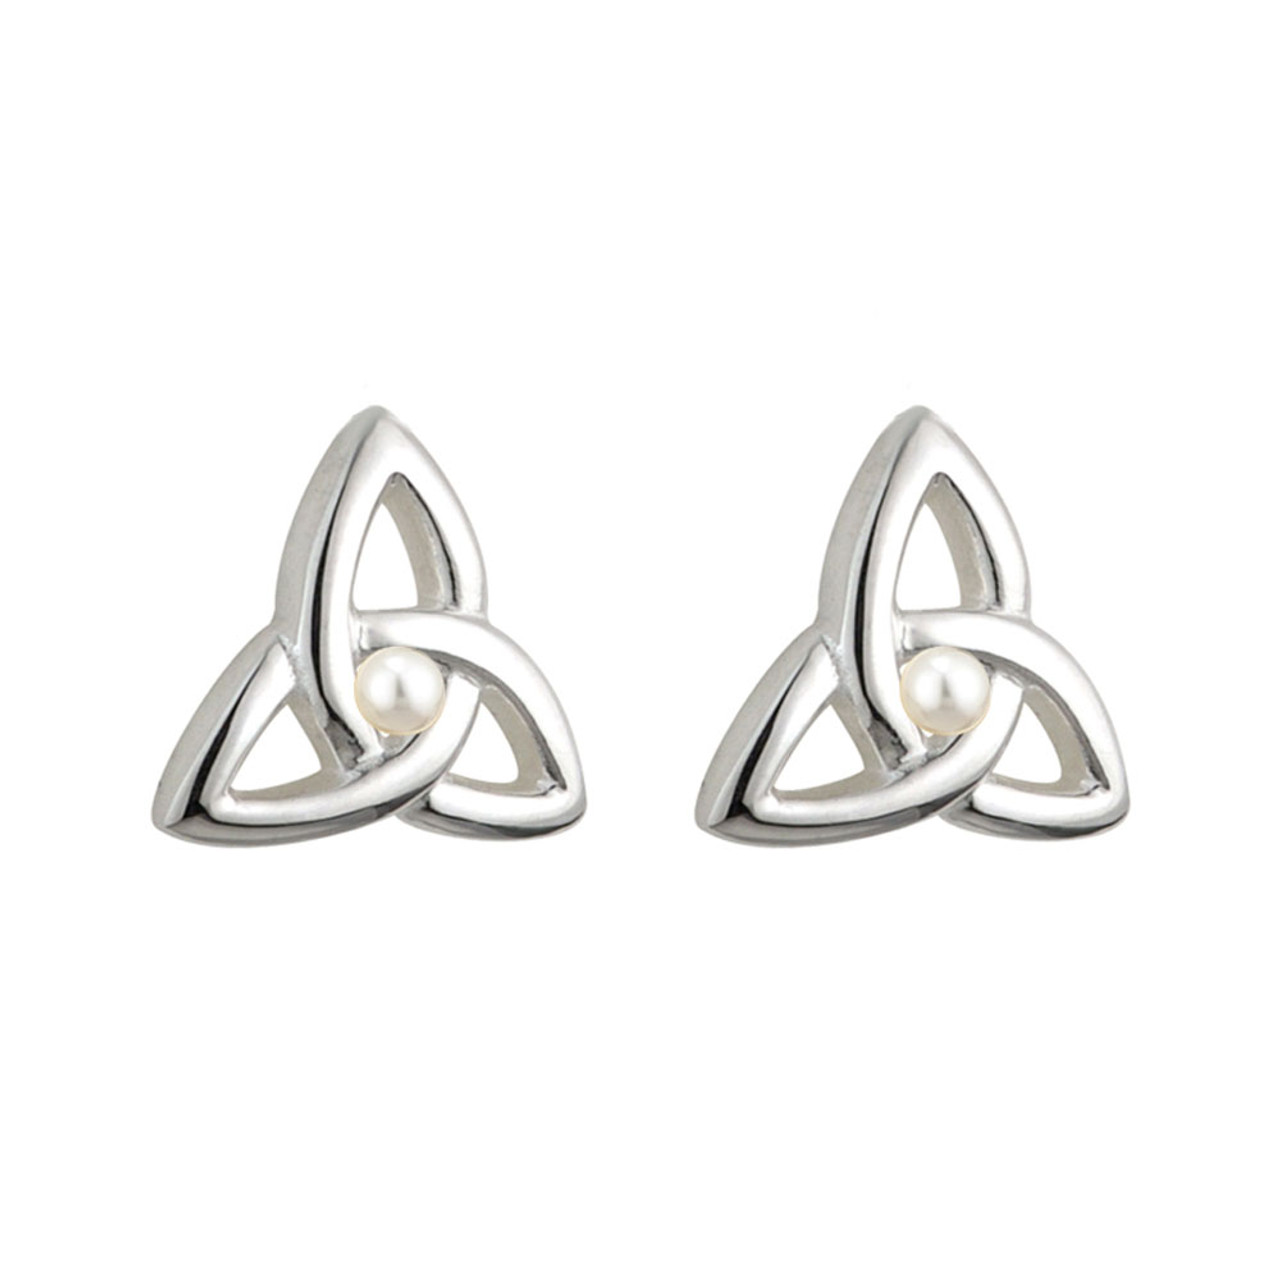 Child's Silver Plated Trinity Knot Earrings with Pearl